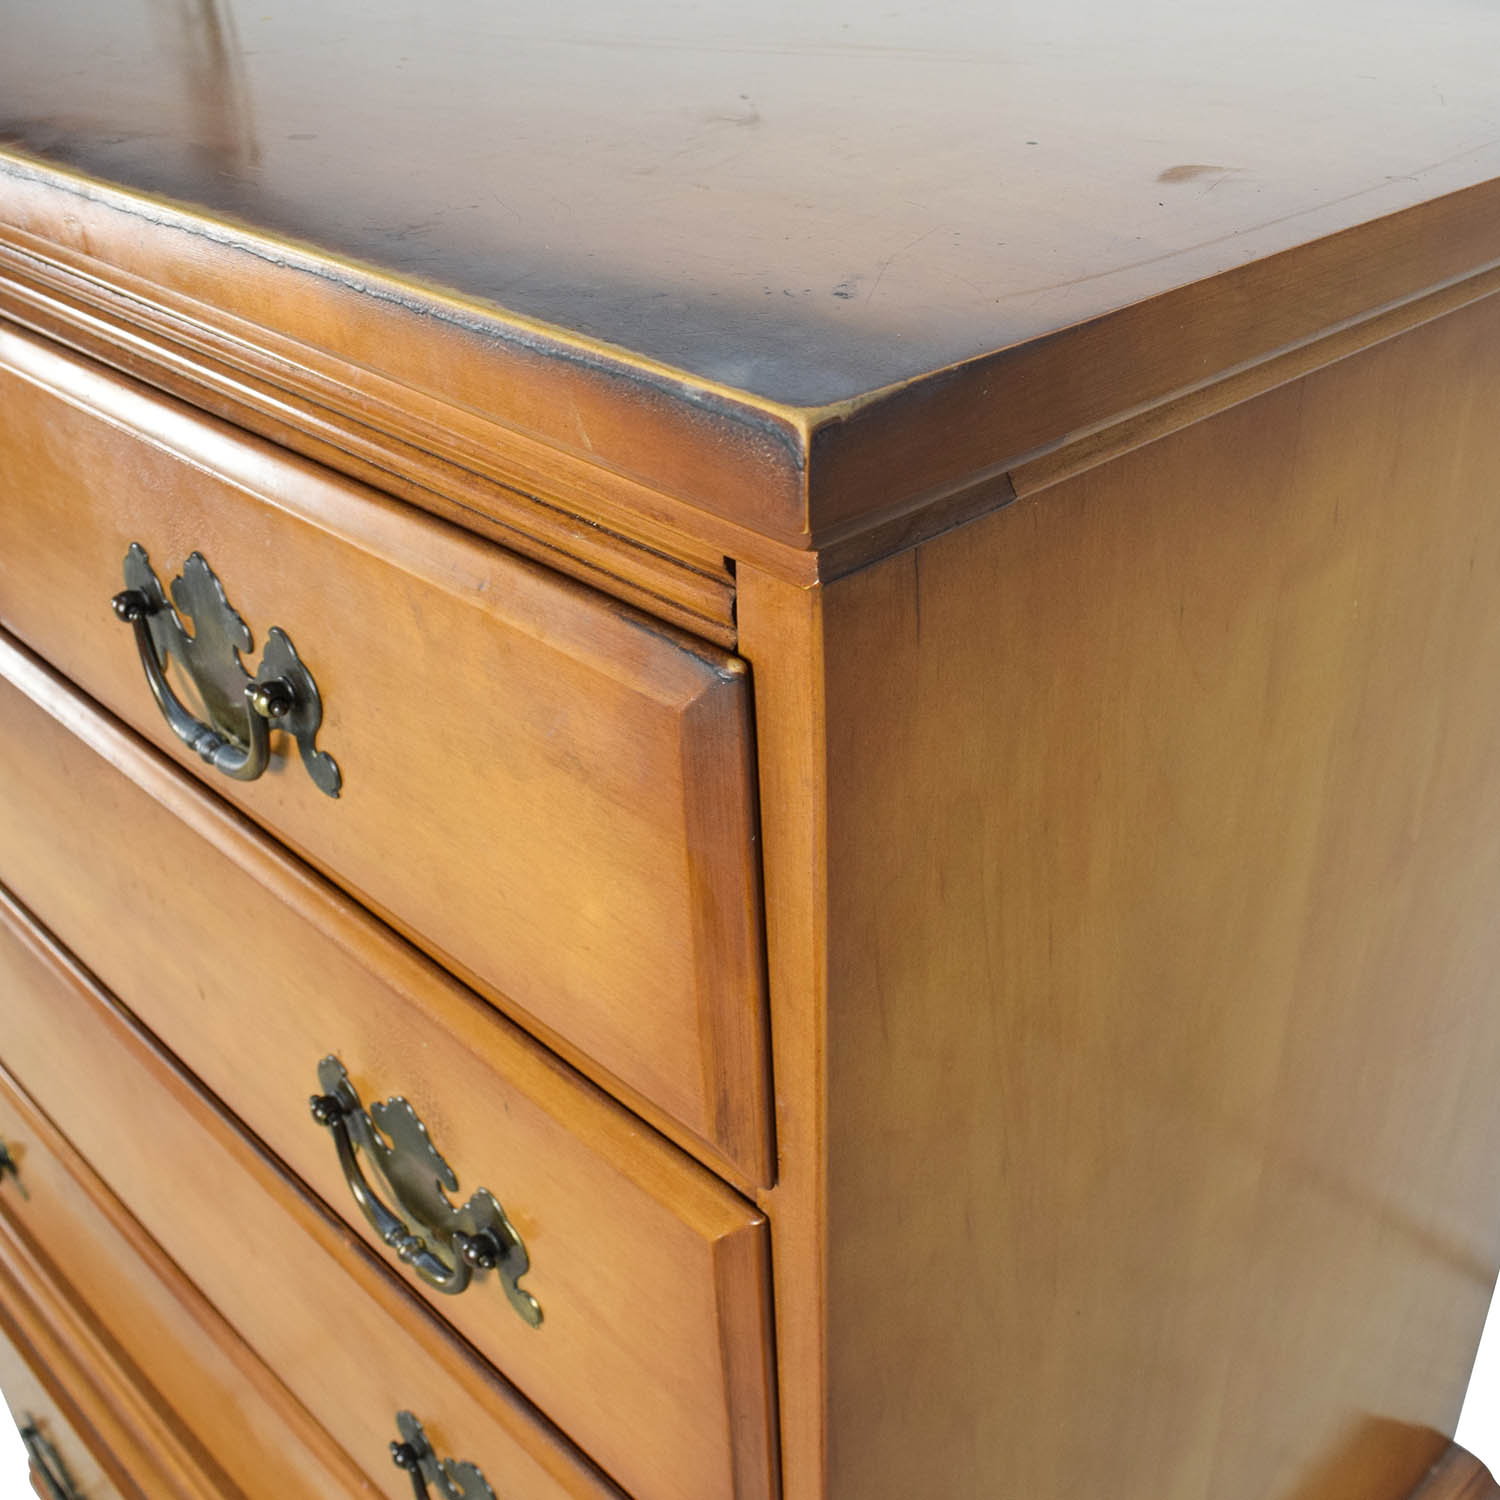 Used Kitchen Cabinets Vt 50 Off Vermont Winooski Valley Vermont Winooski Valley